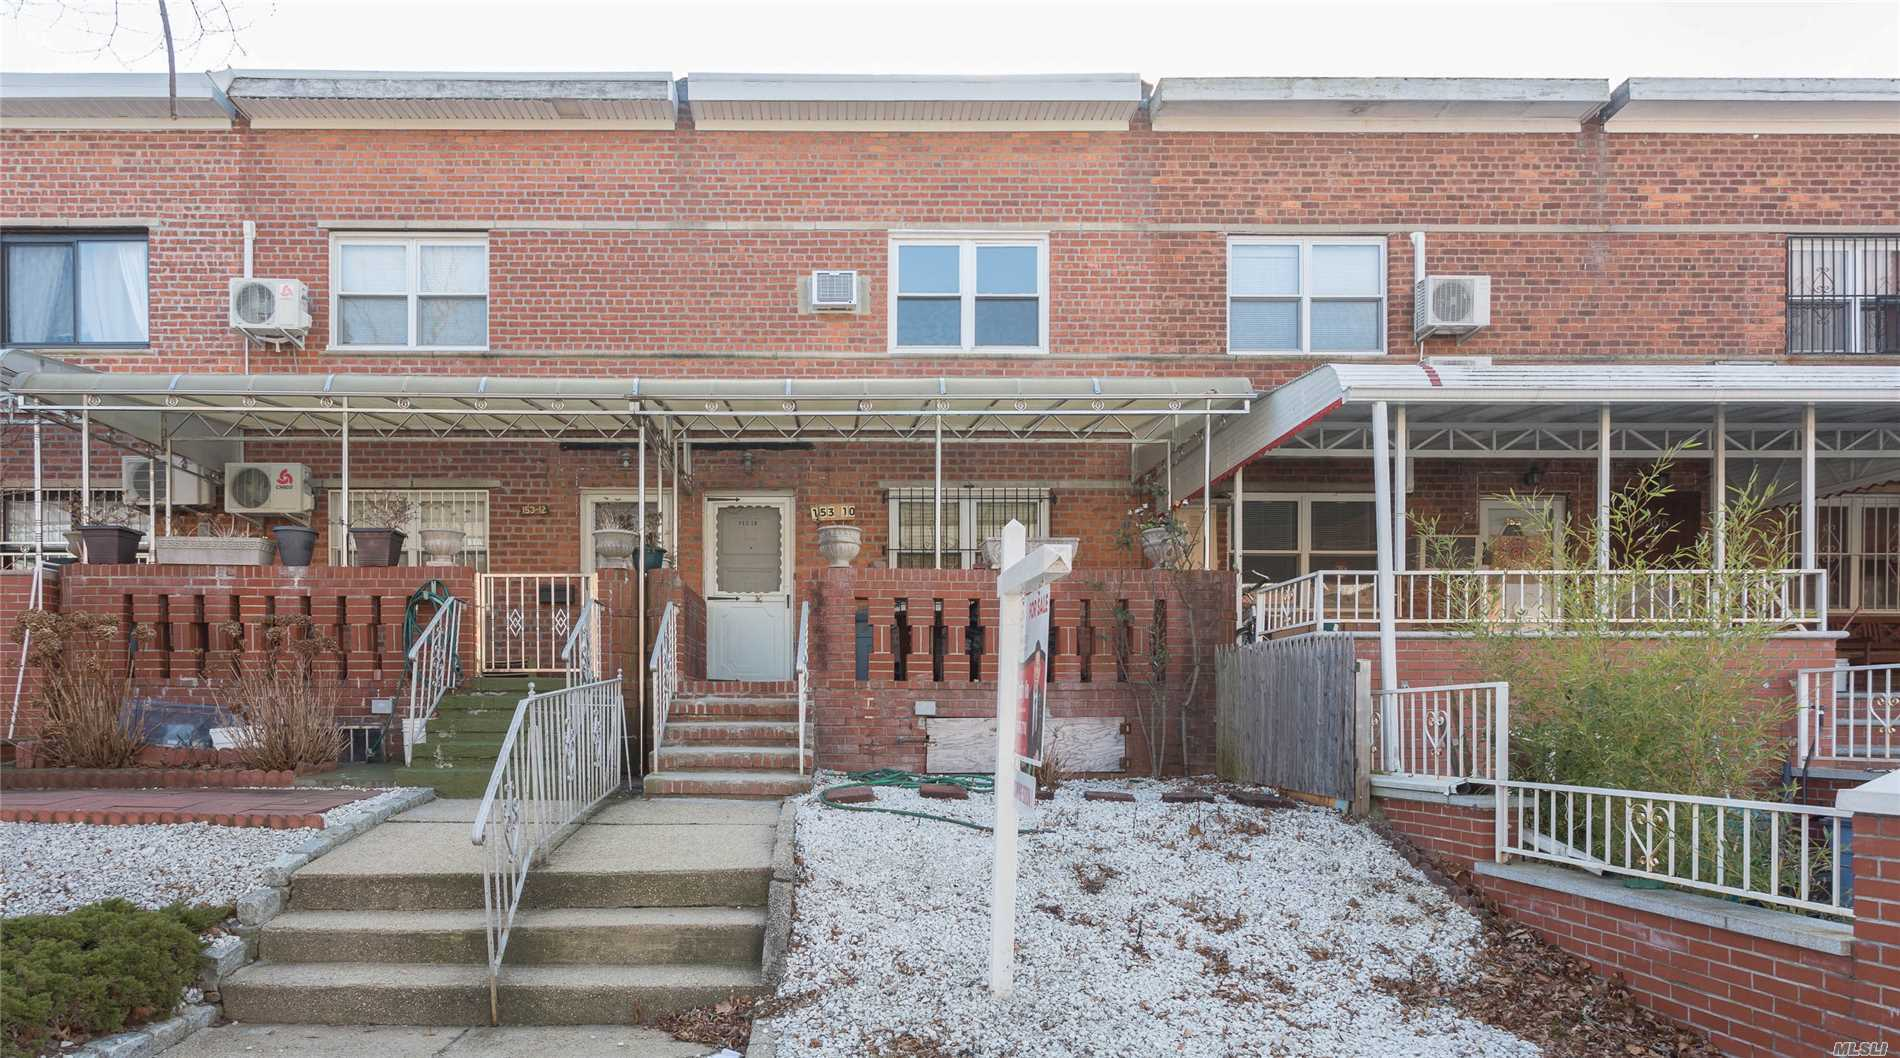 Location, Location, Location! Attached 2 Bedroom, 1 Bath Colonial In Absolute Prime Flushing. Freshly Painted With Beautiful Hardwood Floors. Just Minutes From Kissena Park. Conveniently Located Near Shopping, Schools, Restaurants, House Of Worship, And More! Hot Listing, Will Not Last!